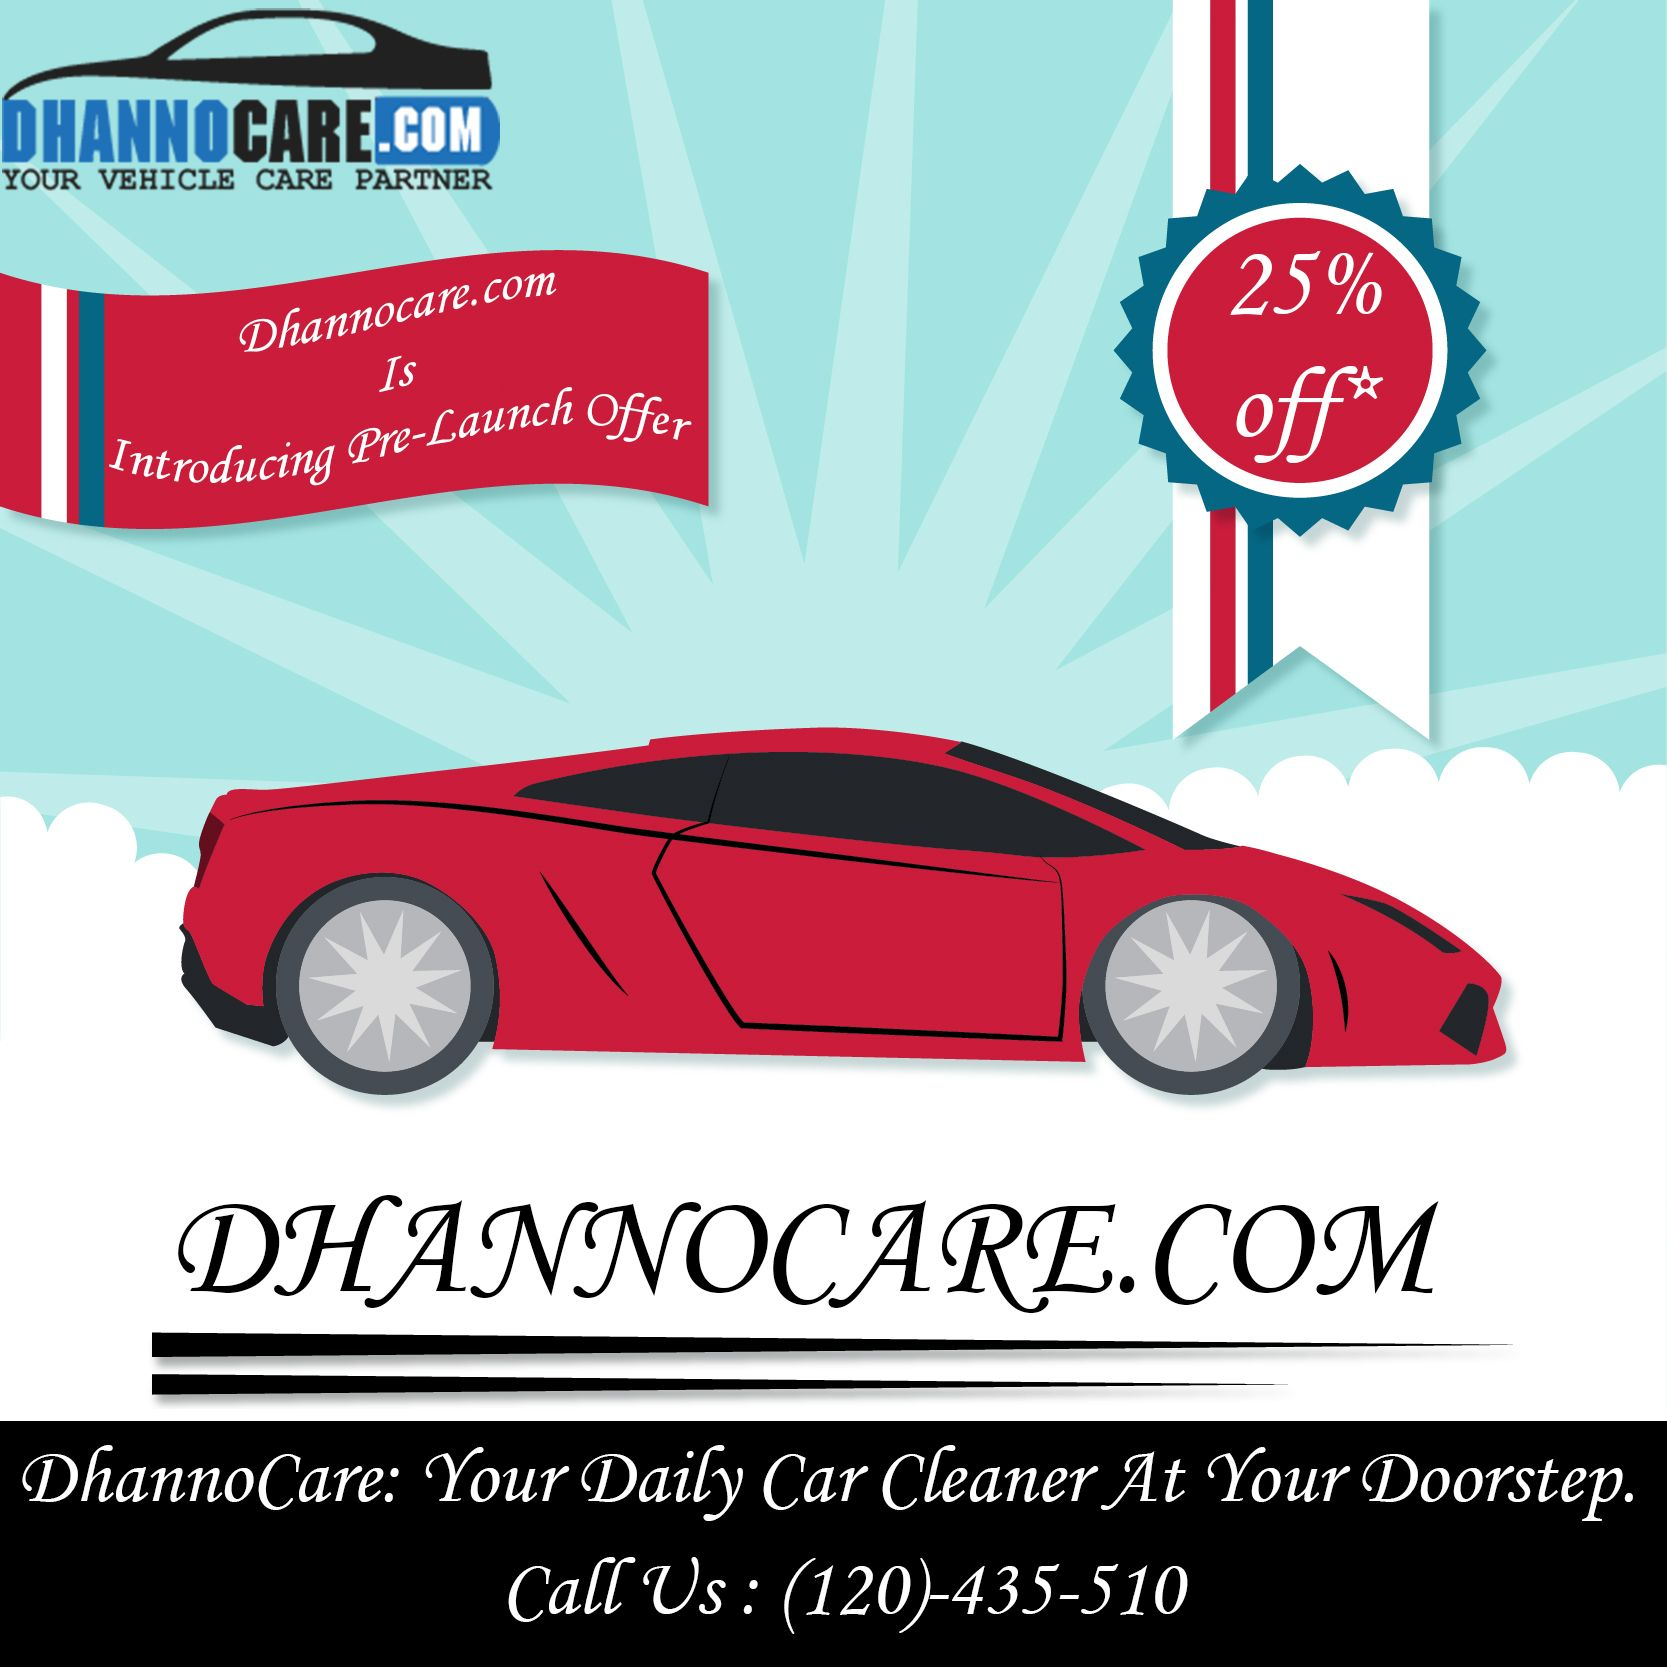 Pin by DhannoCare on Car care & Car Cleaning Vehicle